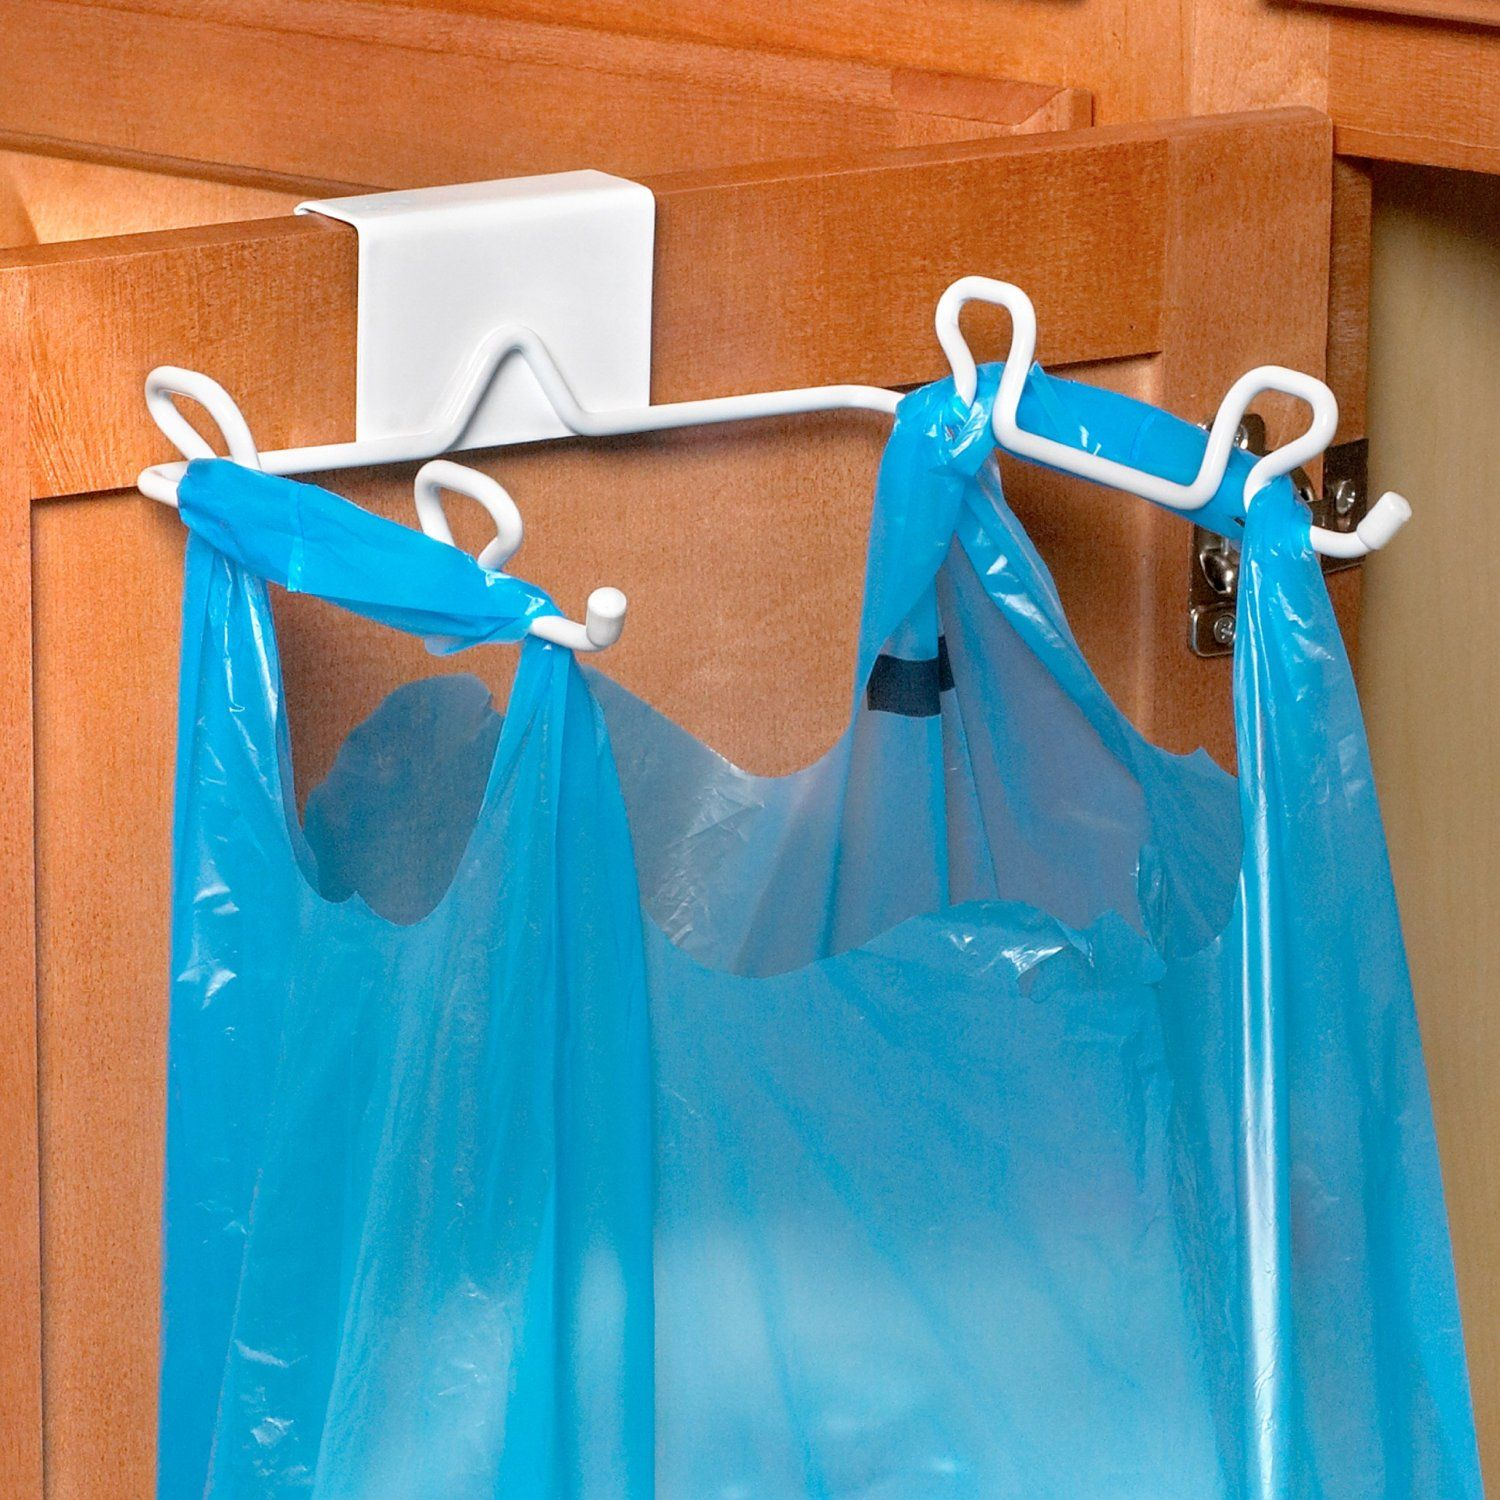 Amazon Spectrum Diversified Over The Cabinet Door Trash Bag Amazon Spectrum  Diversified Over The Cabinet Door